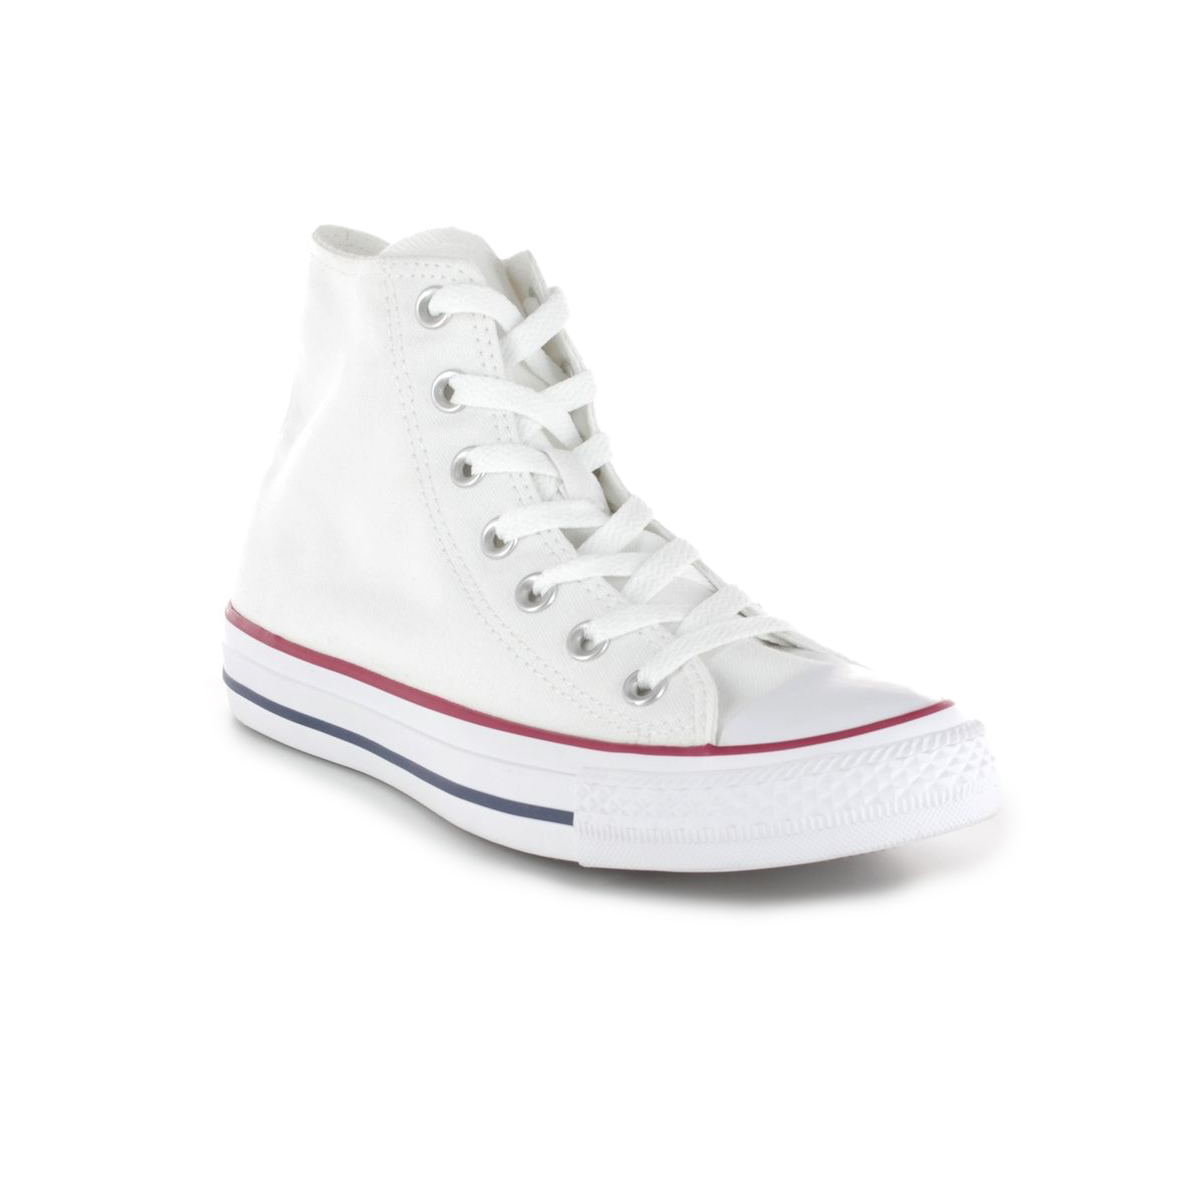 Baby White Converse Pram Shoes M7650c All Star Hi Top Optical White